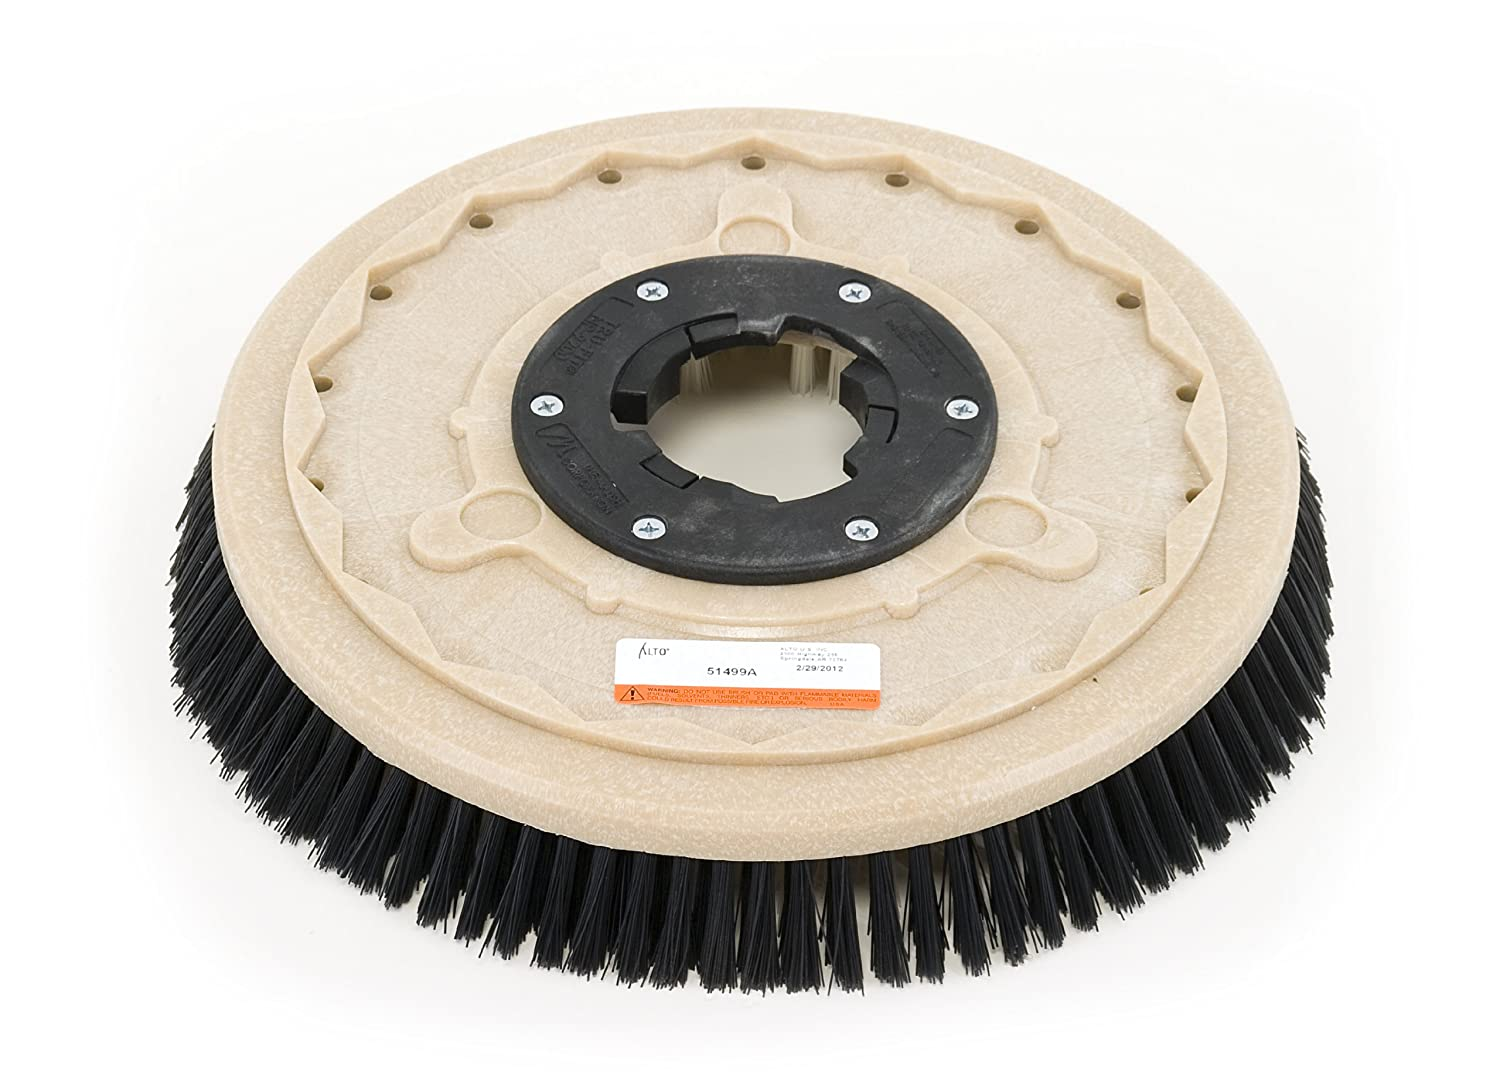 Clarke 51499A Commercial 17 Inch Diameter Nylon Brush, Carpet Applications:  Floor Machine Brush: Amazon.com: Industrial & Scientific